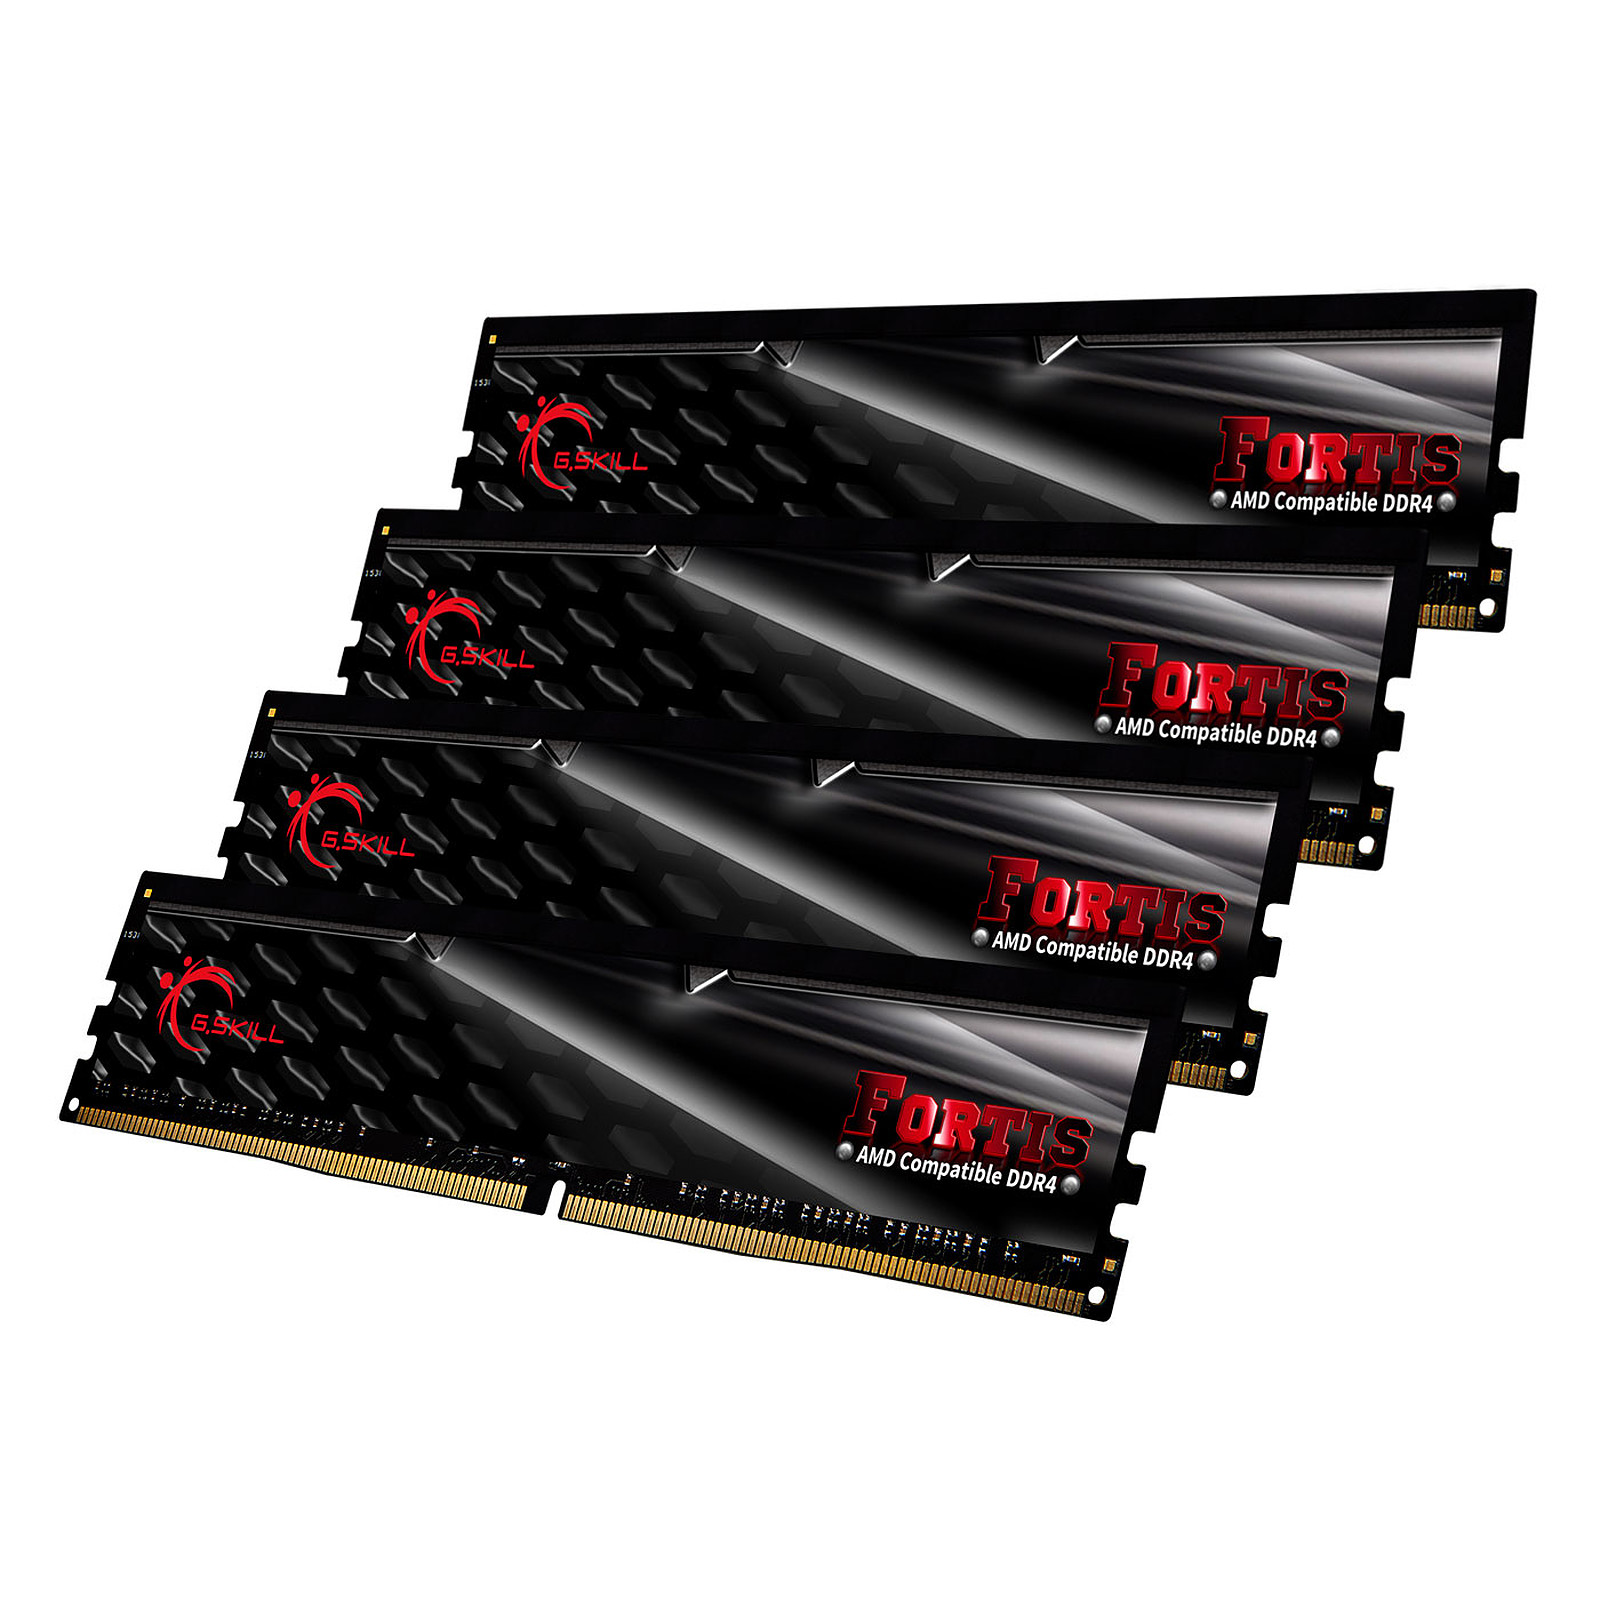 G.Skill Fortis Series 32 Go (4x 8 Go) DDR4 2133 MHz CL15